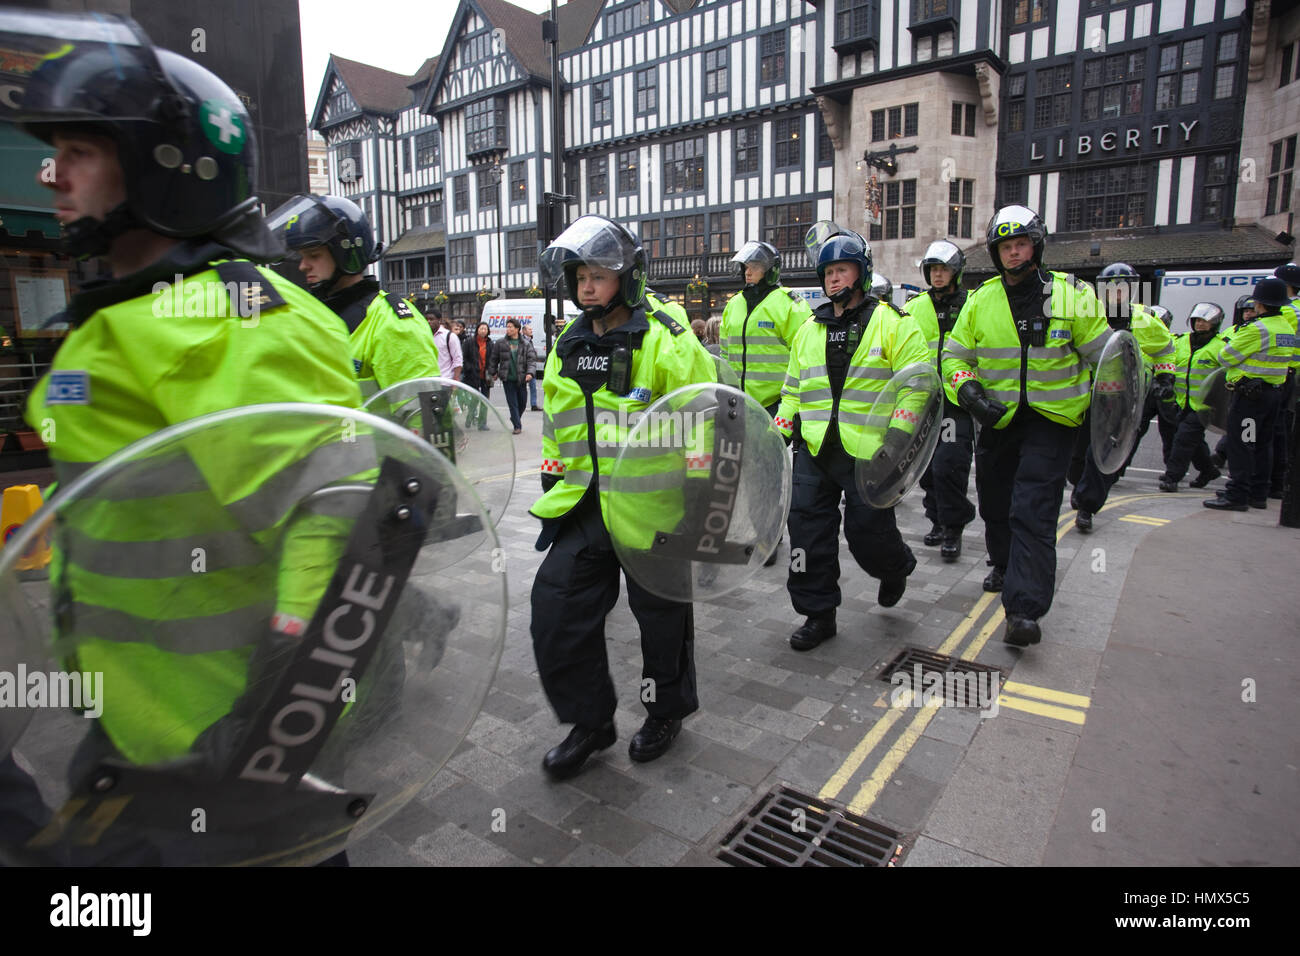 Metropolitan Riot Police on the streets of London during a students ant-cuts demonstration, Central London, England, - Stock Image